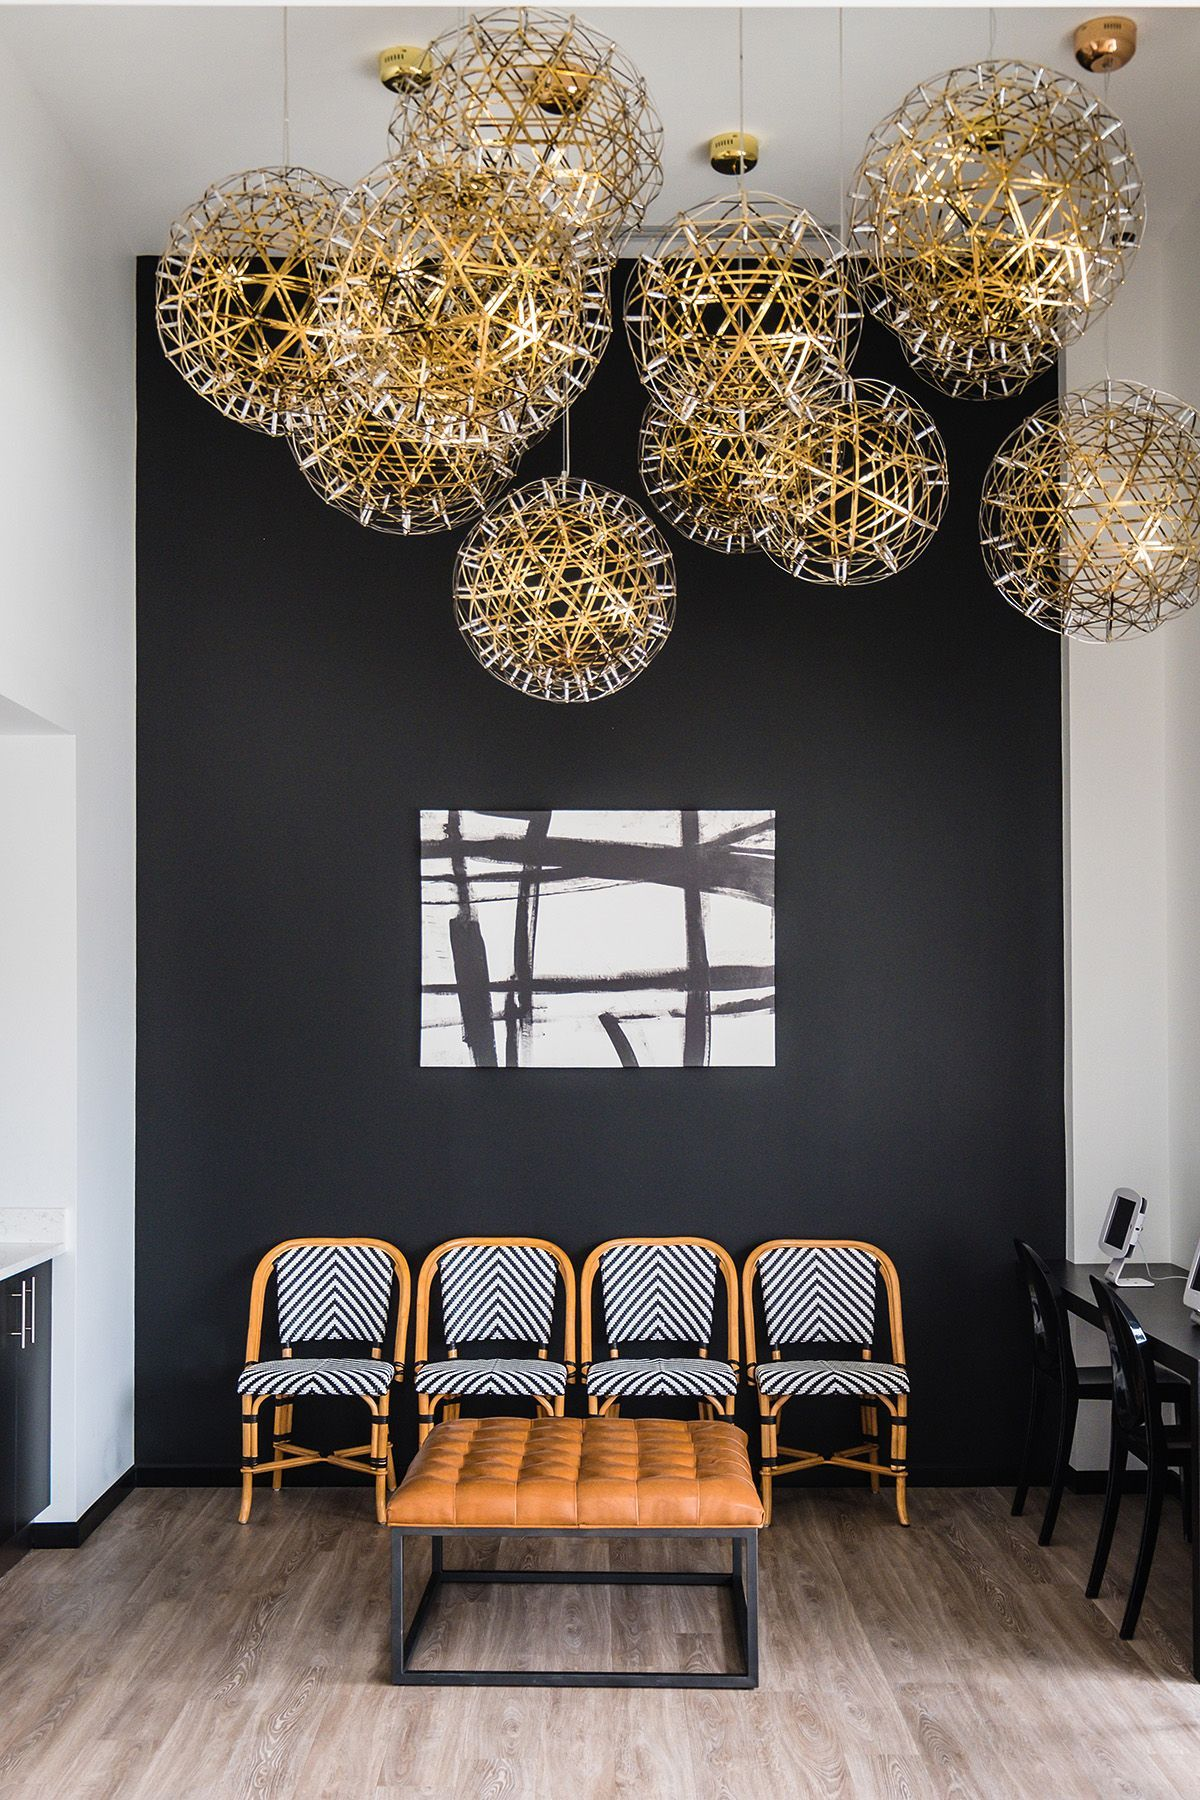 Let Us Help You See More About What You Have Been Looking For Www Delightfull Eu Visit Us For M Waiting Room Design Waiting Room Decor Medical Office Decor